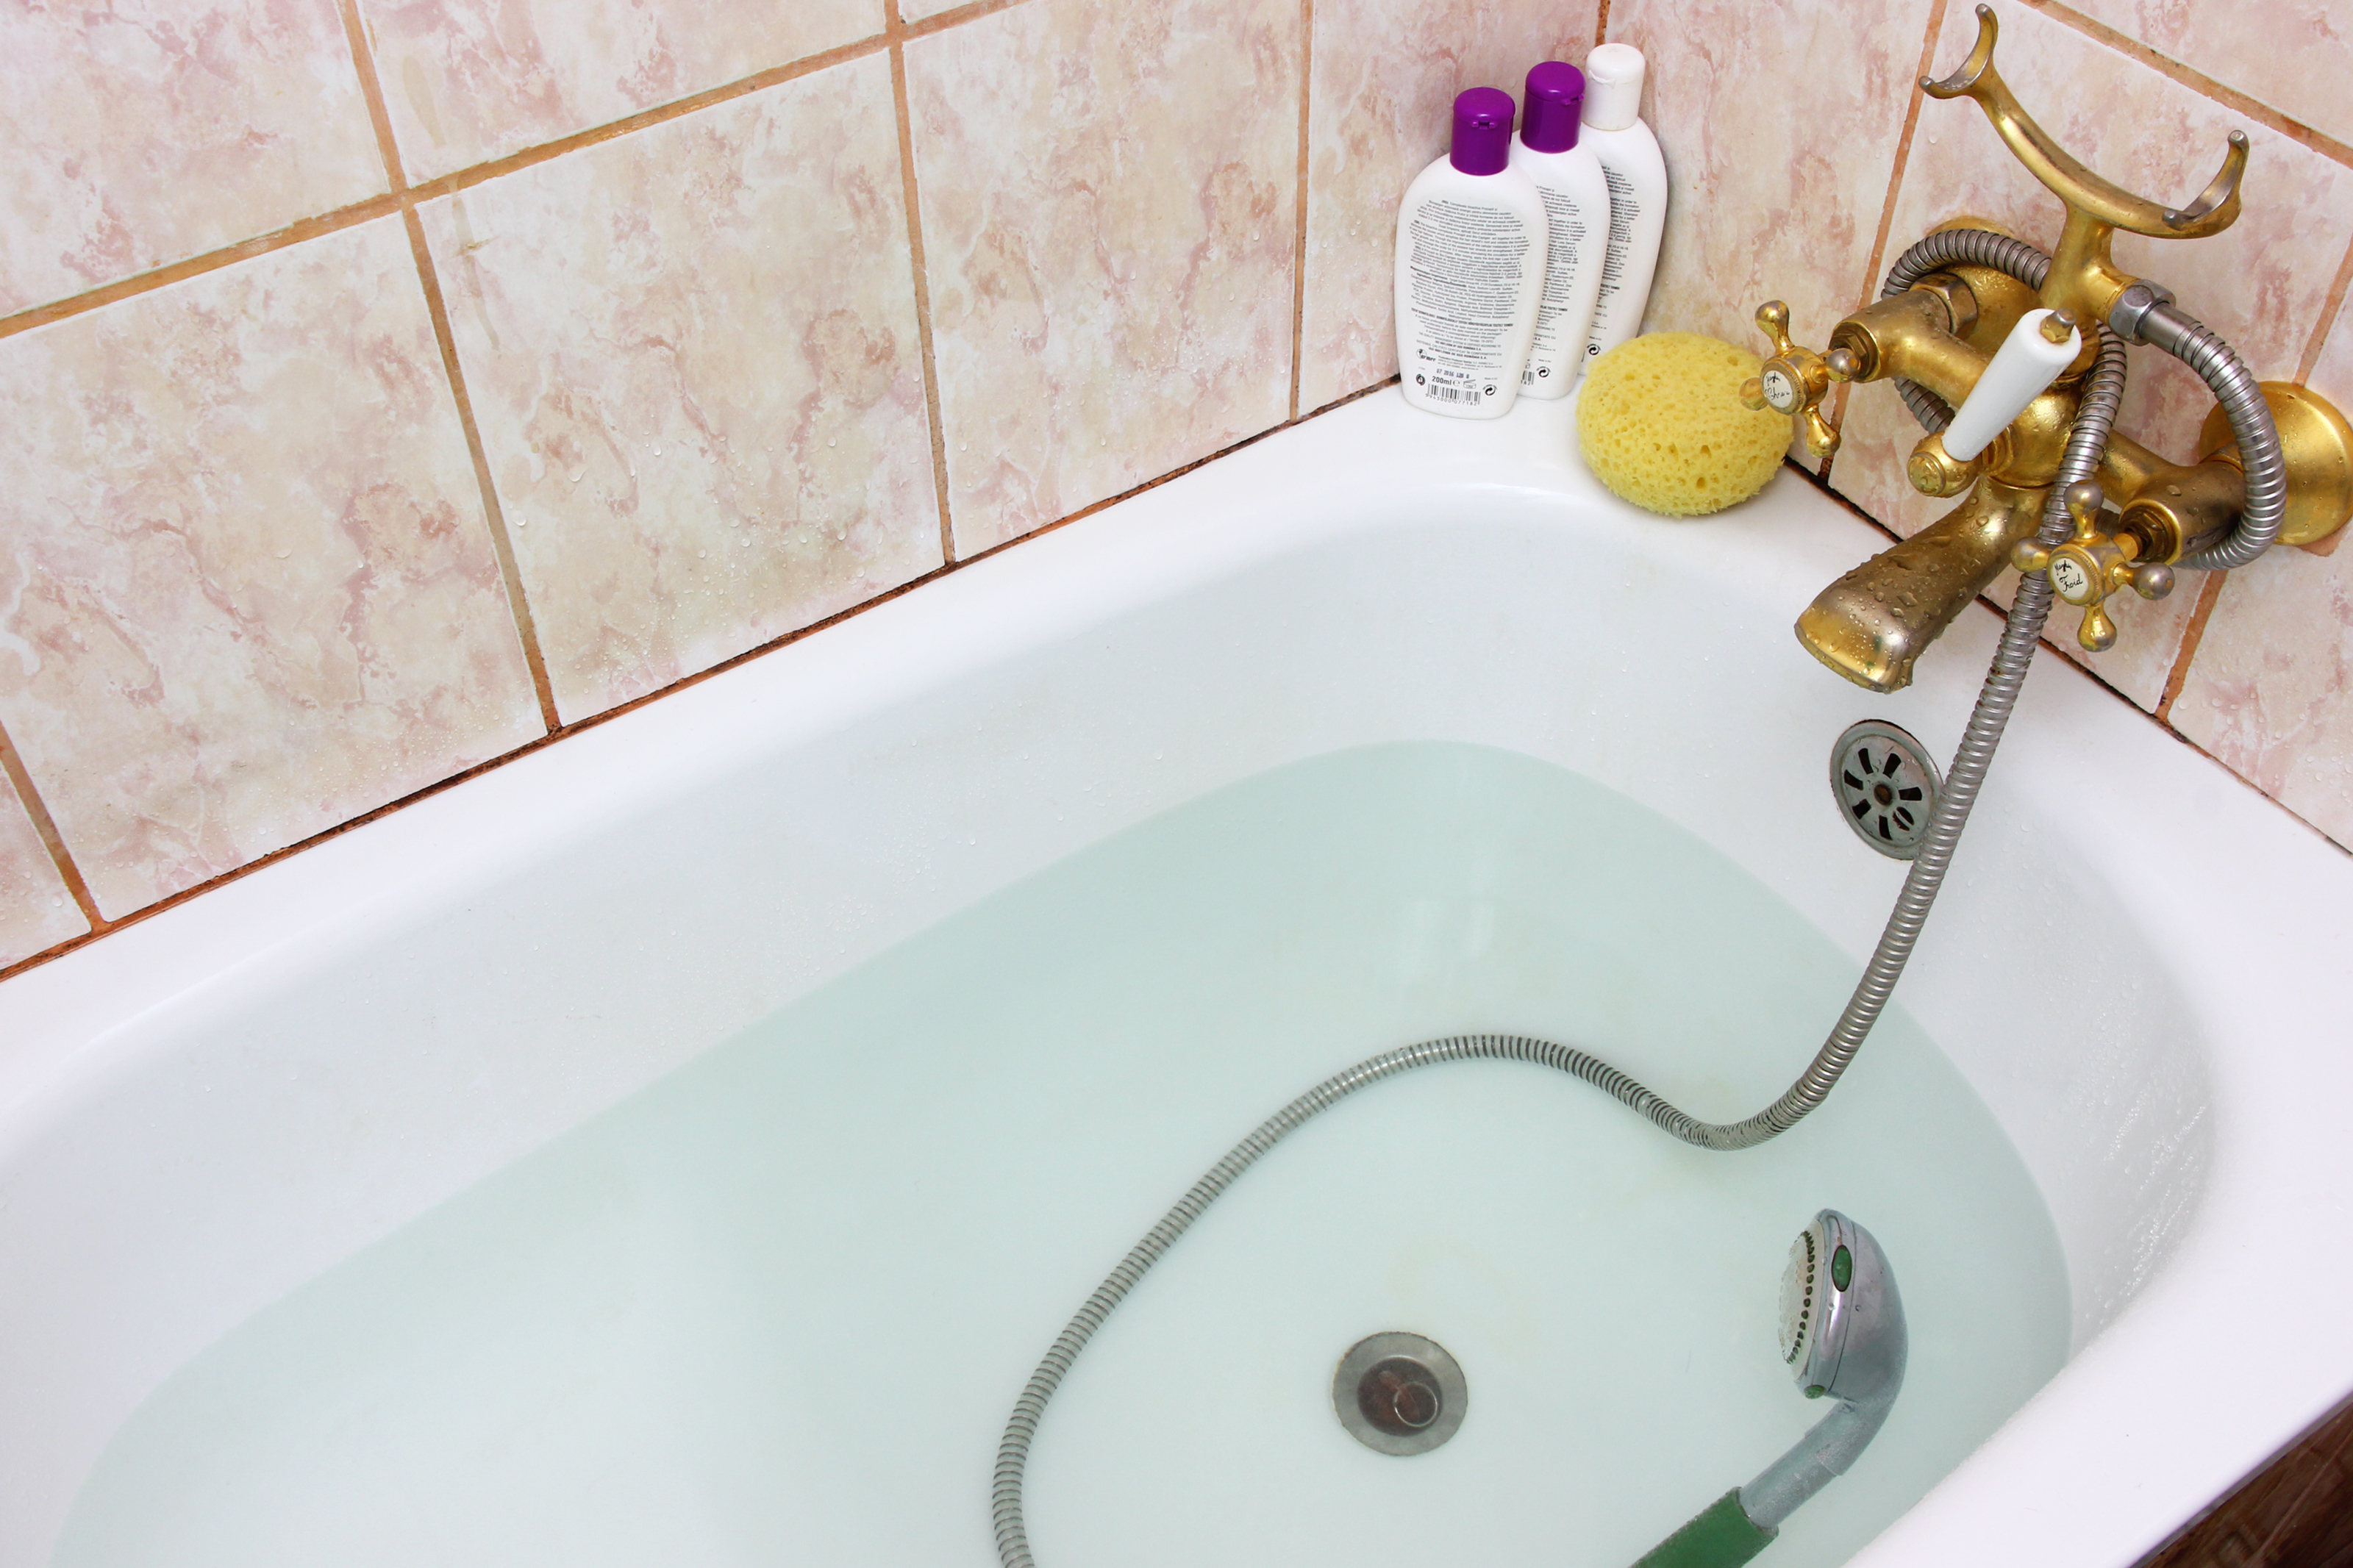 Best Way To Clean Bathroom How To Clean A Shower Tub The Easy Way 4 Steps With Pictures